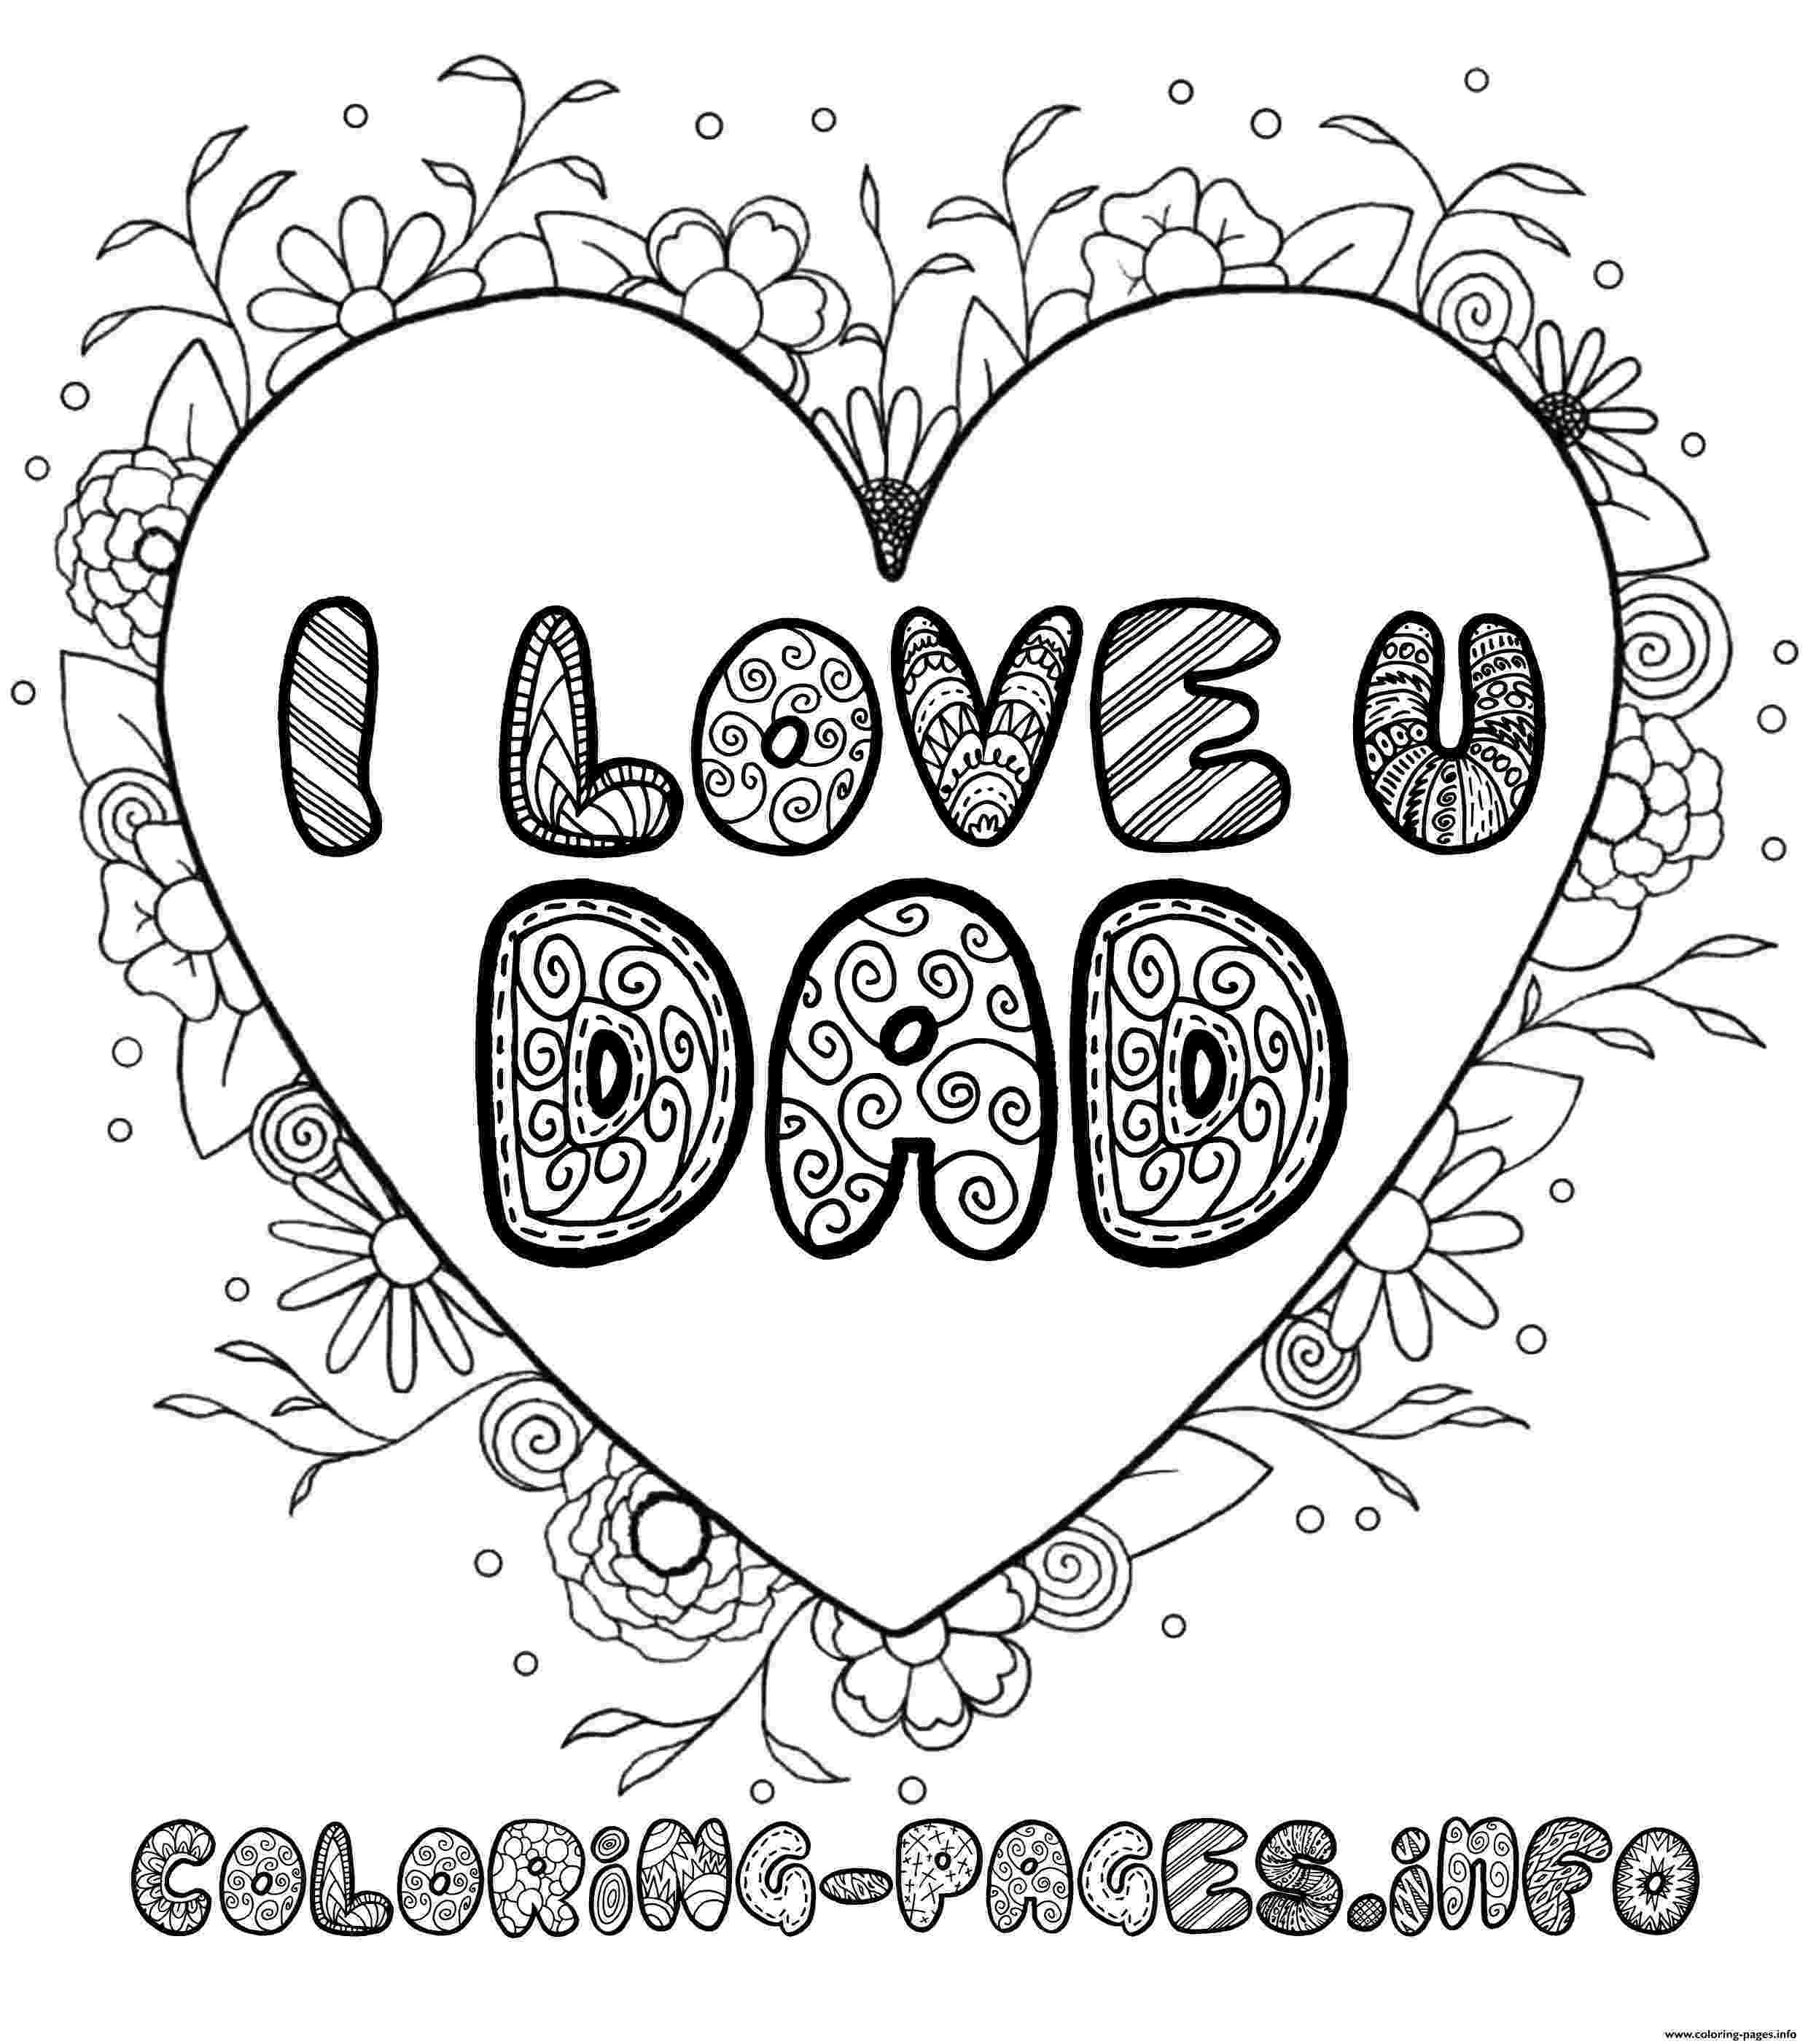 i love you dad coloring pages i love you dad coloring pages for kids desktop you coloring dad pages i love